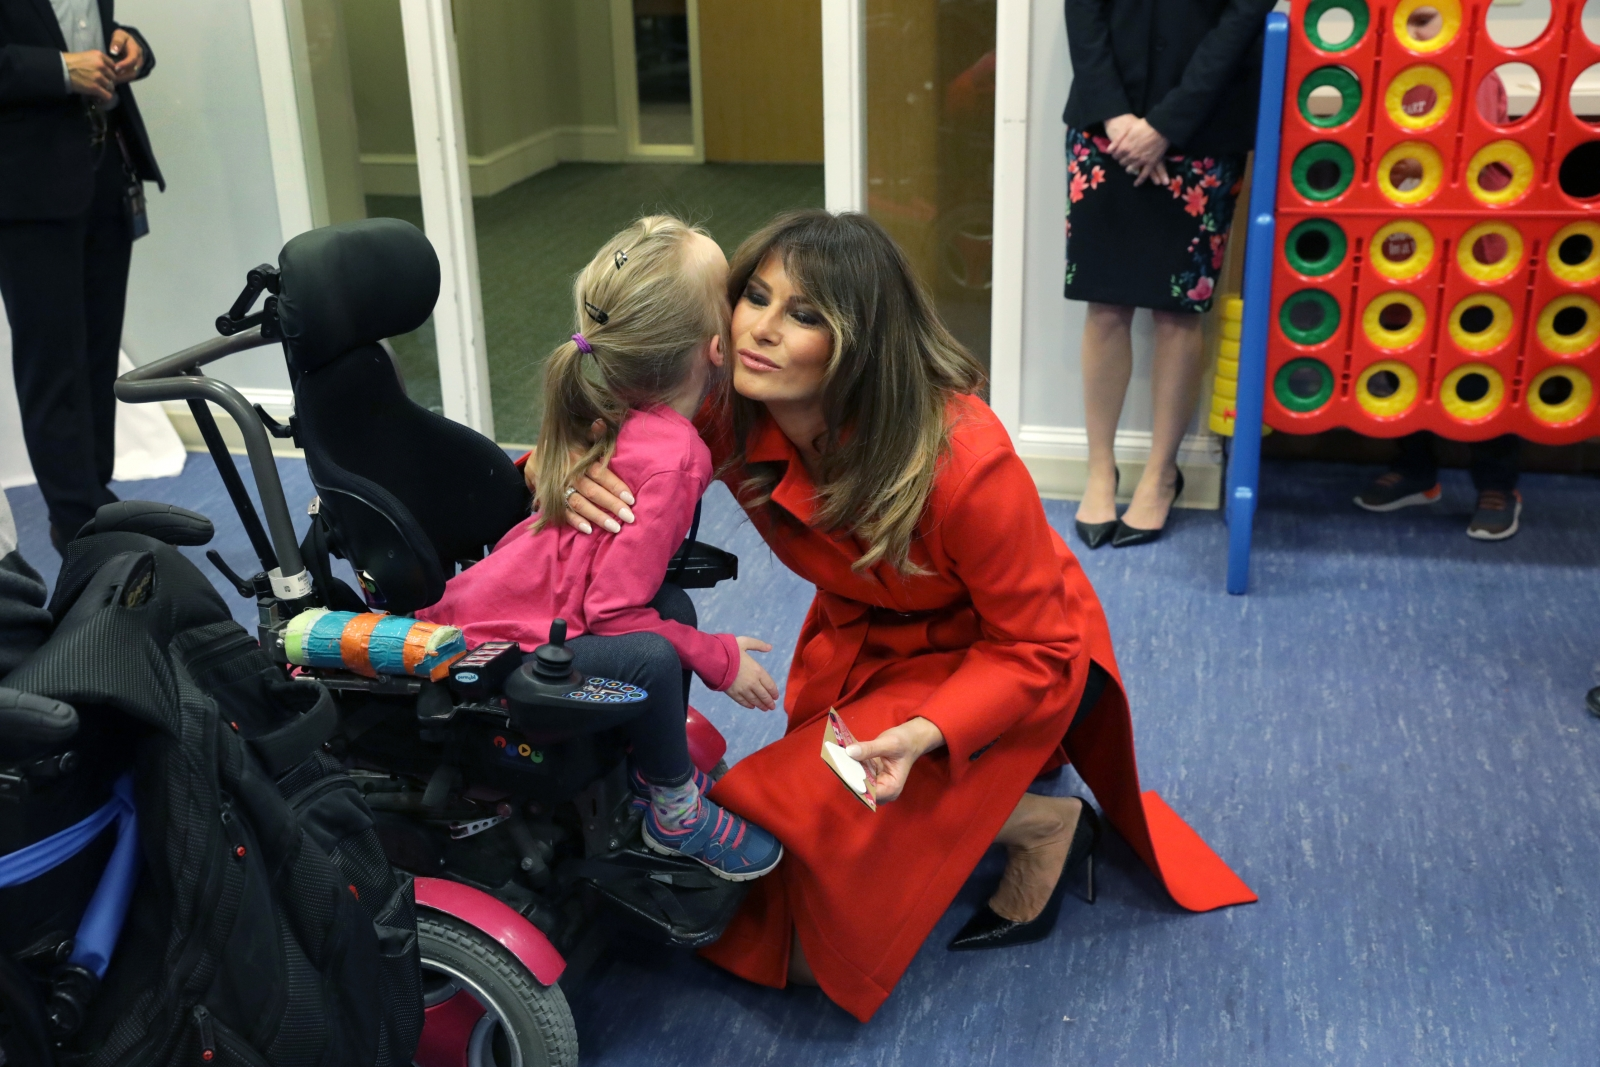 First Lady Melania Trump visited children at The Children's Inn